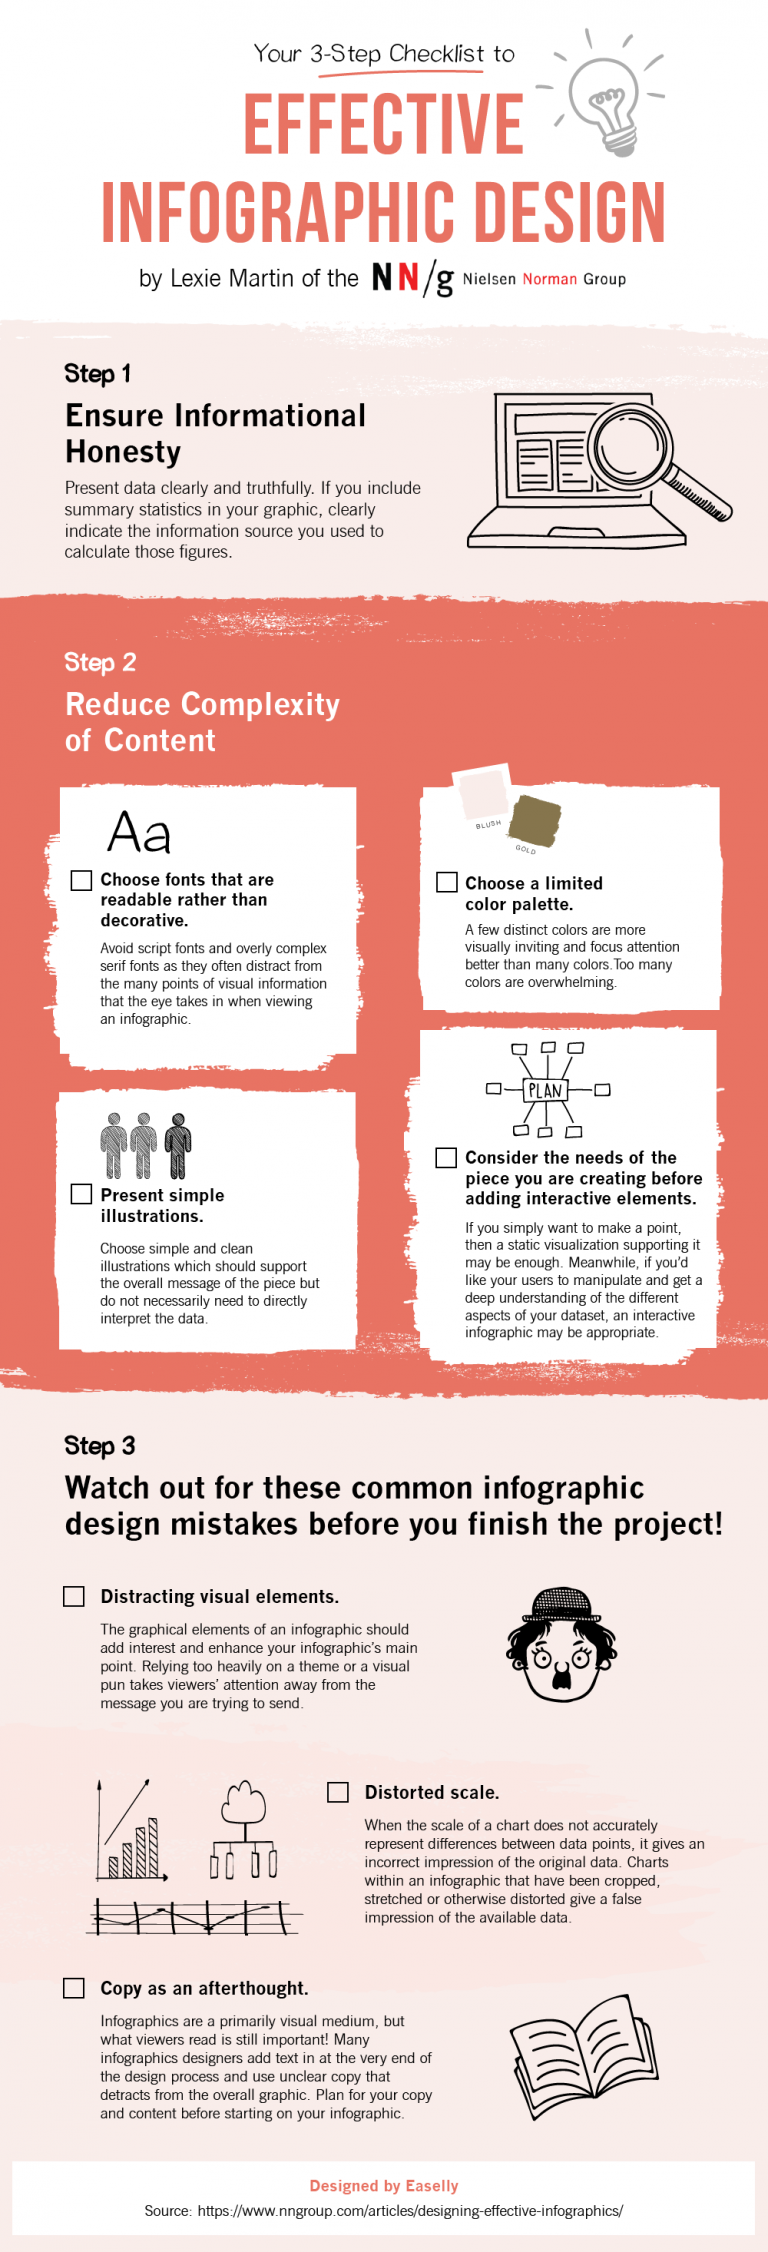 effective infographic design checklist